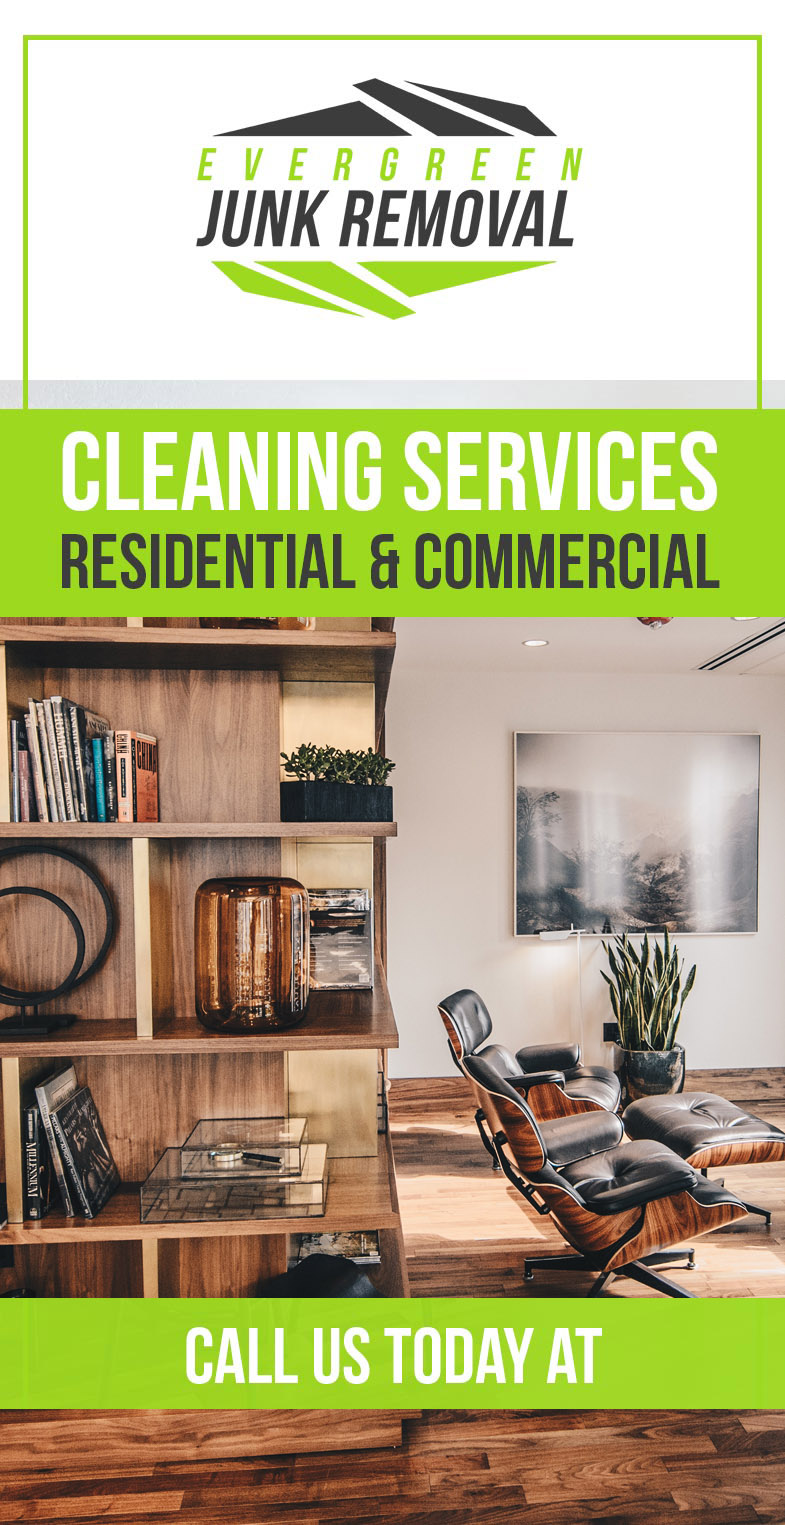 Loxahatchee Groves Commercial Cleaning